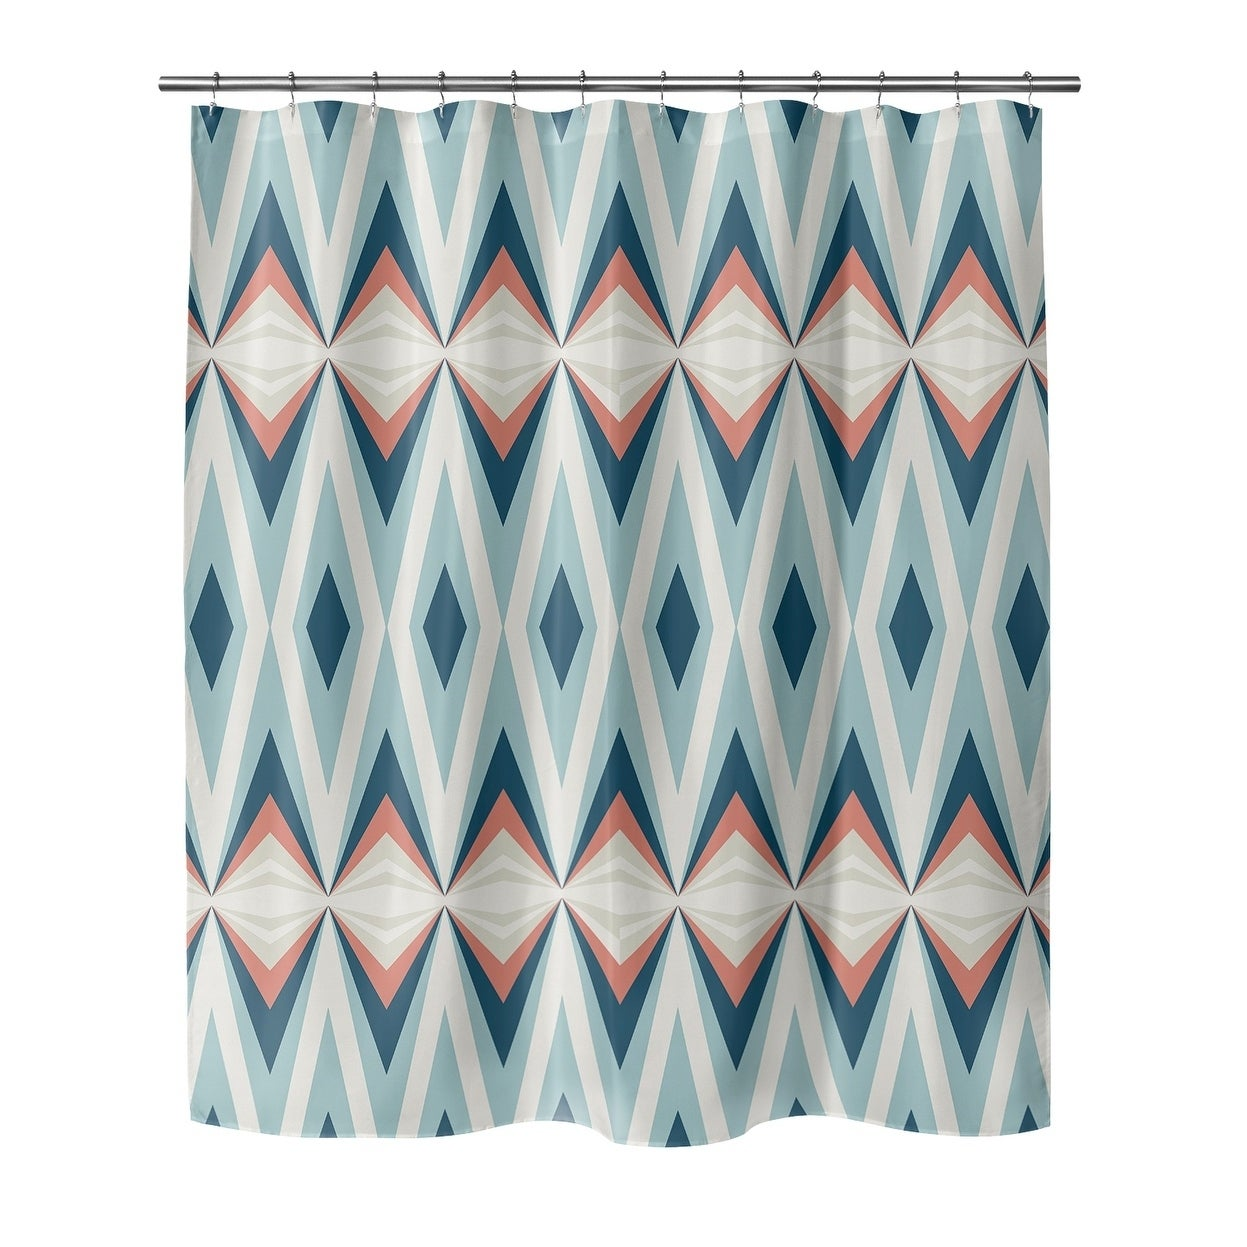 Porch Den Seghers Tribal Pattern Shower Curtain Blue Geometric Modern Contemporary Polyester - Diamond Home USA